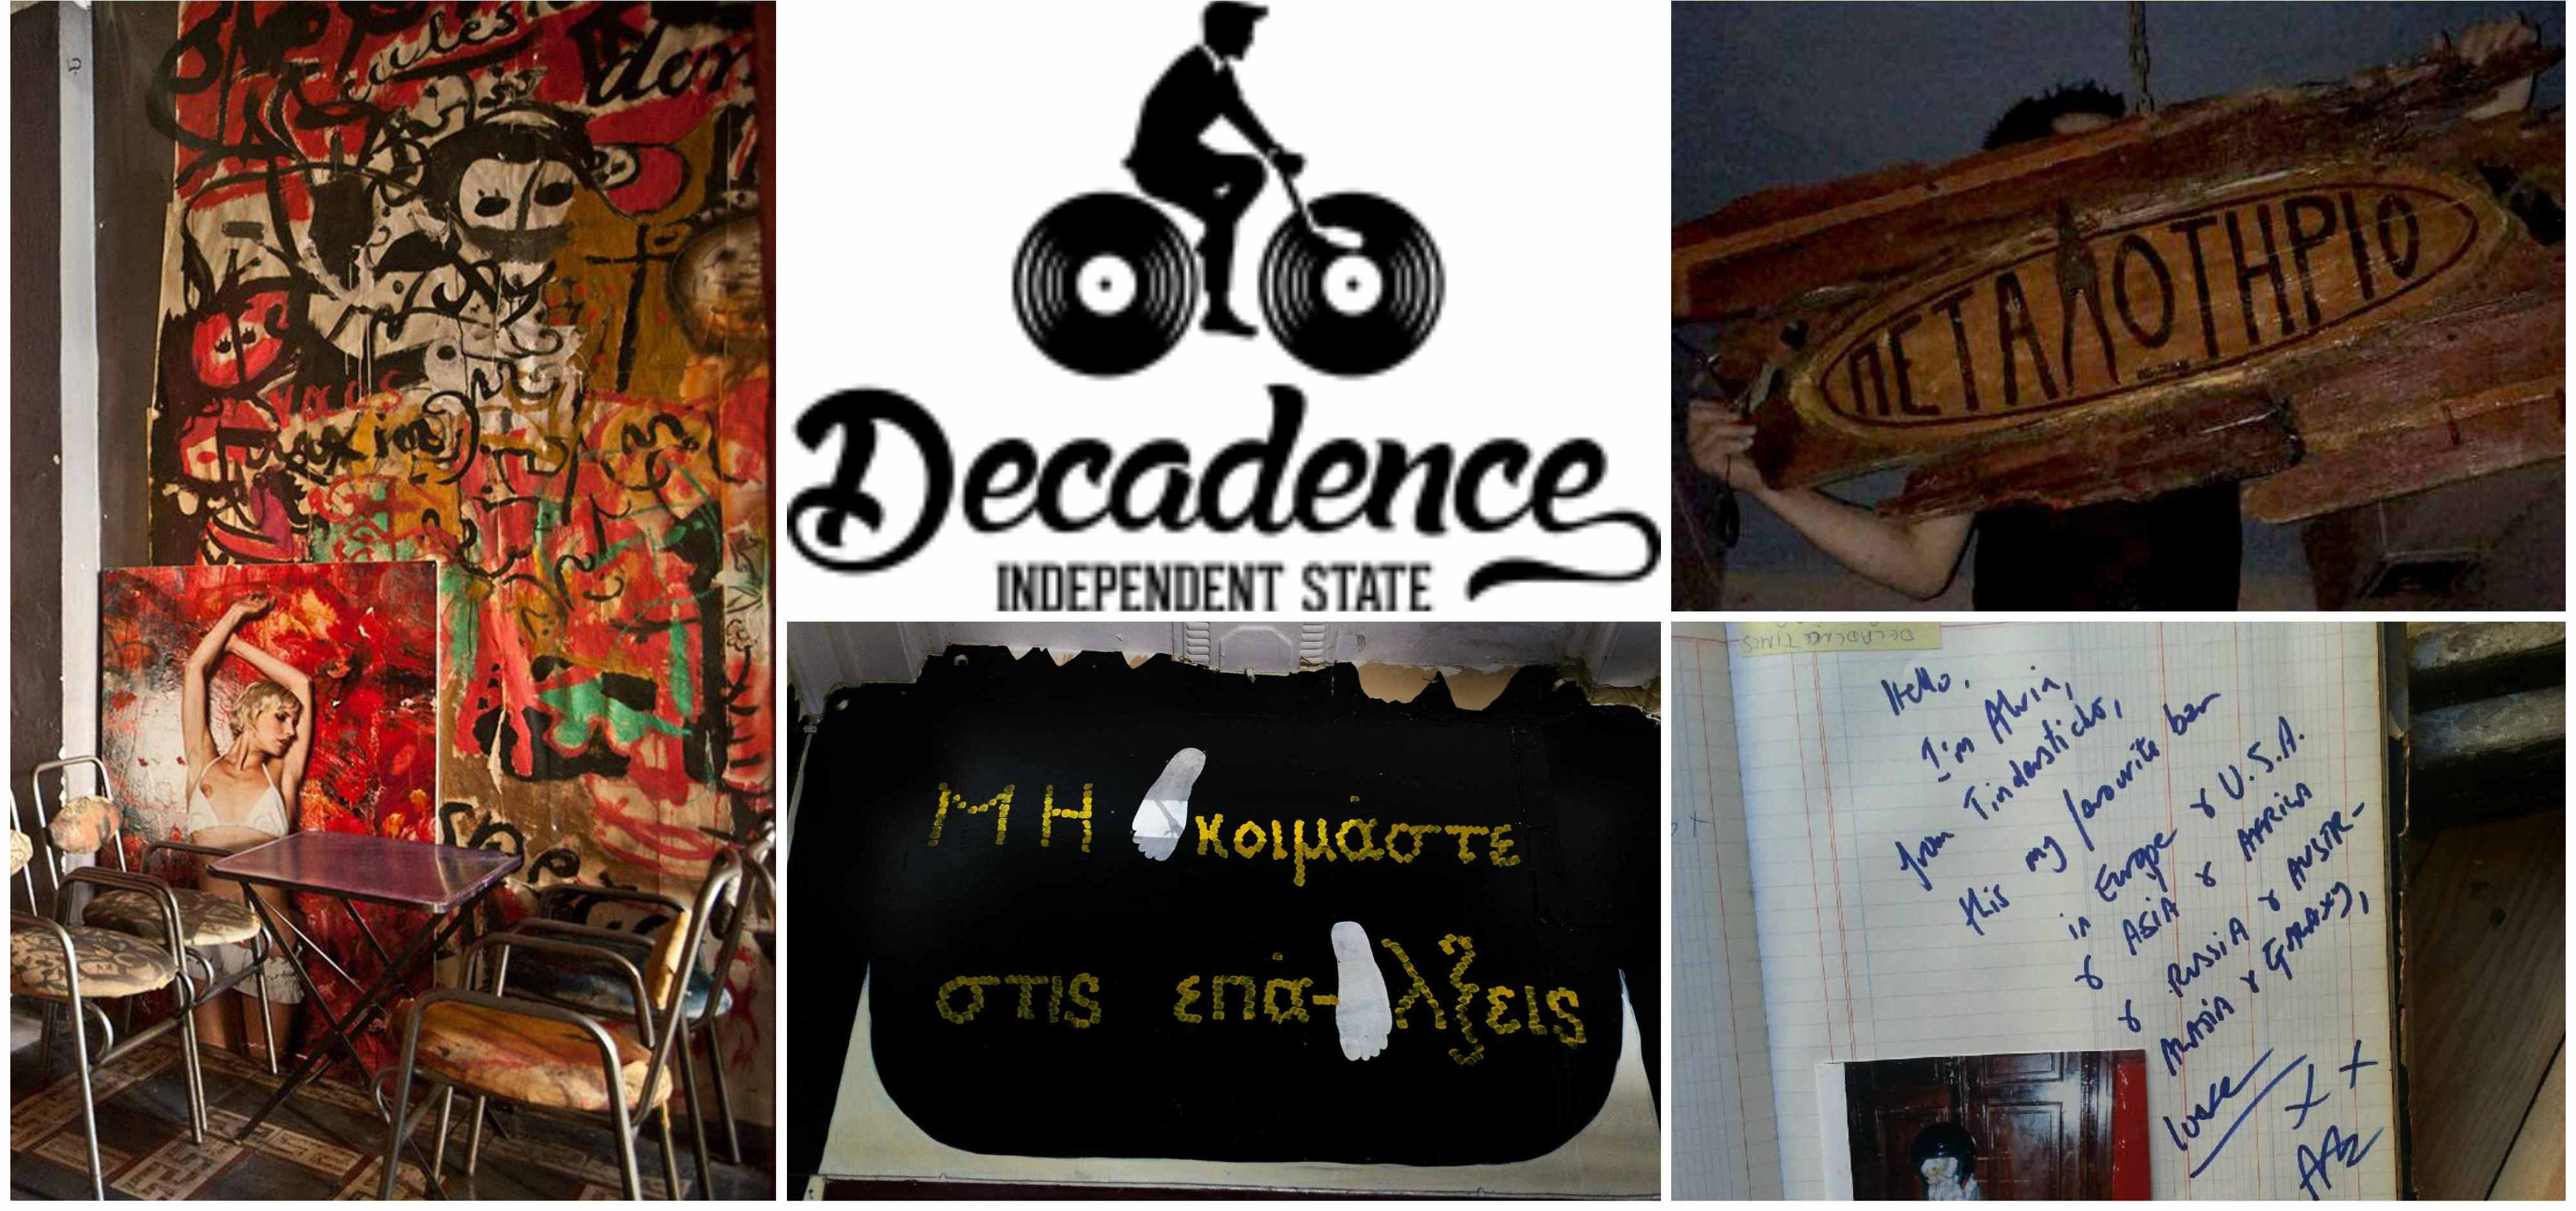 decadence collage 1